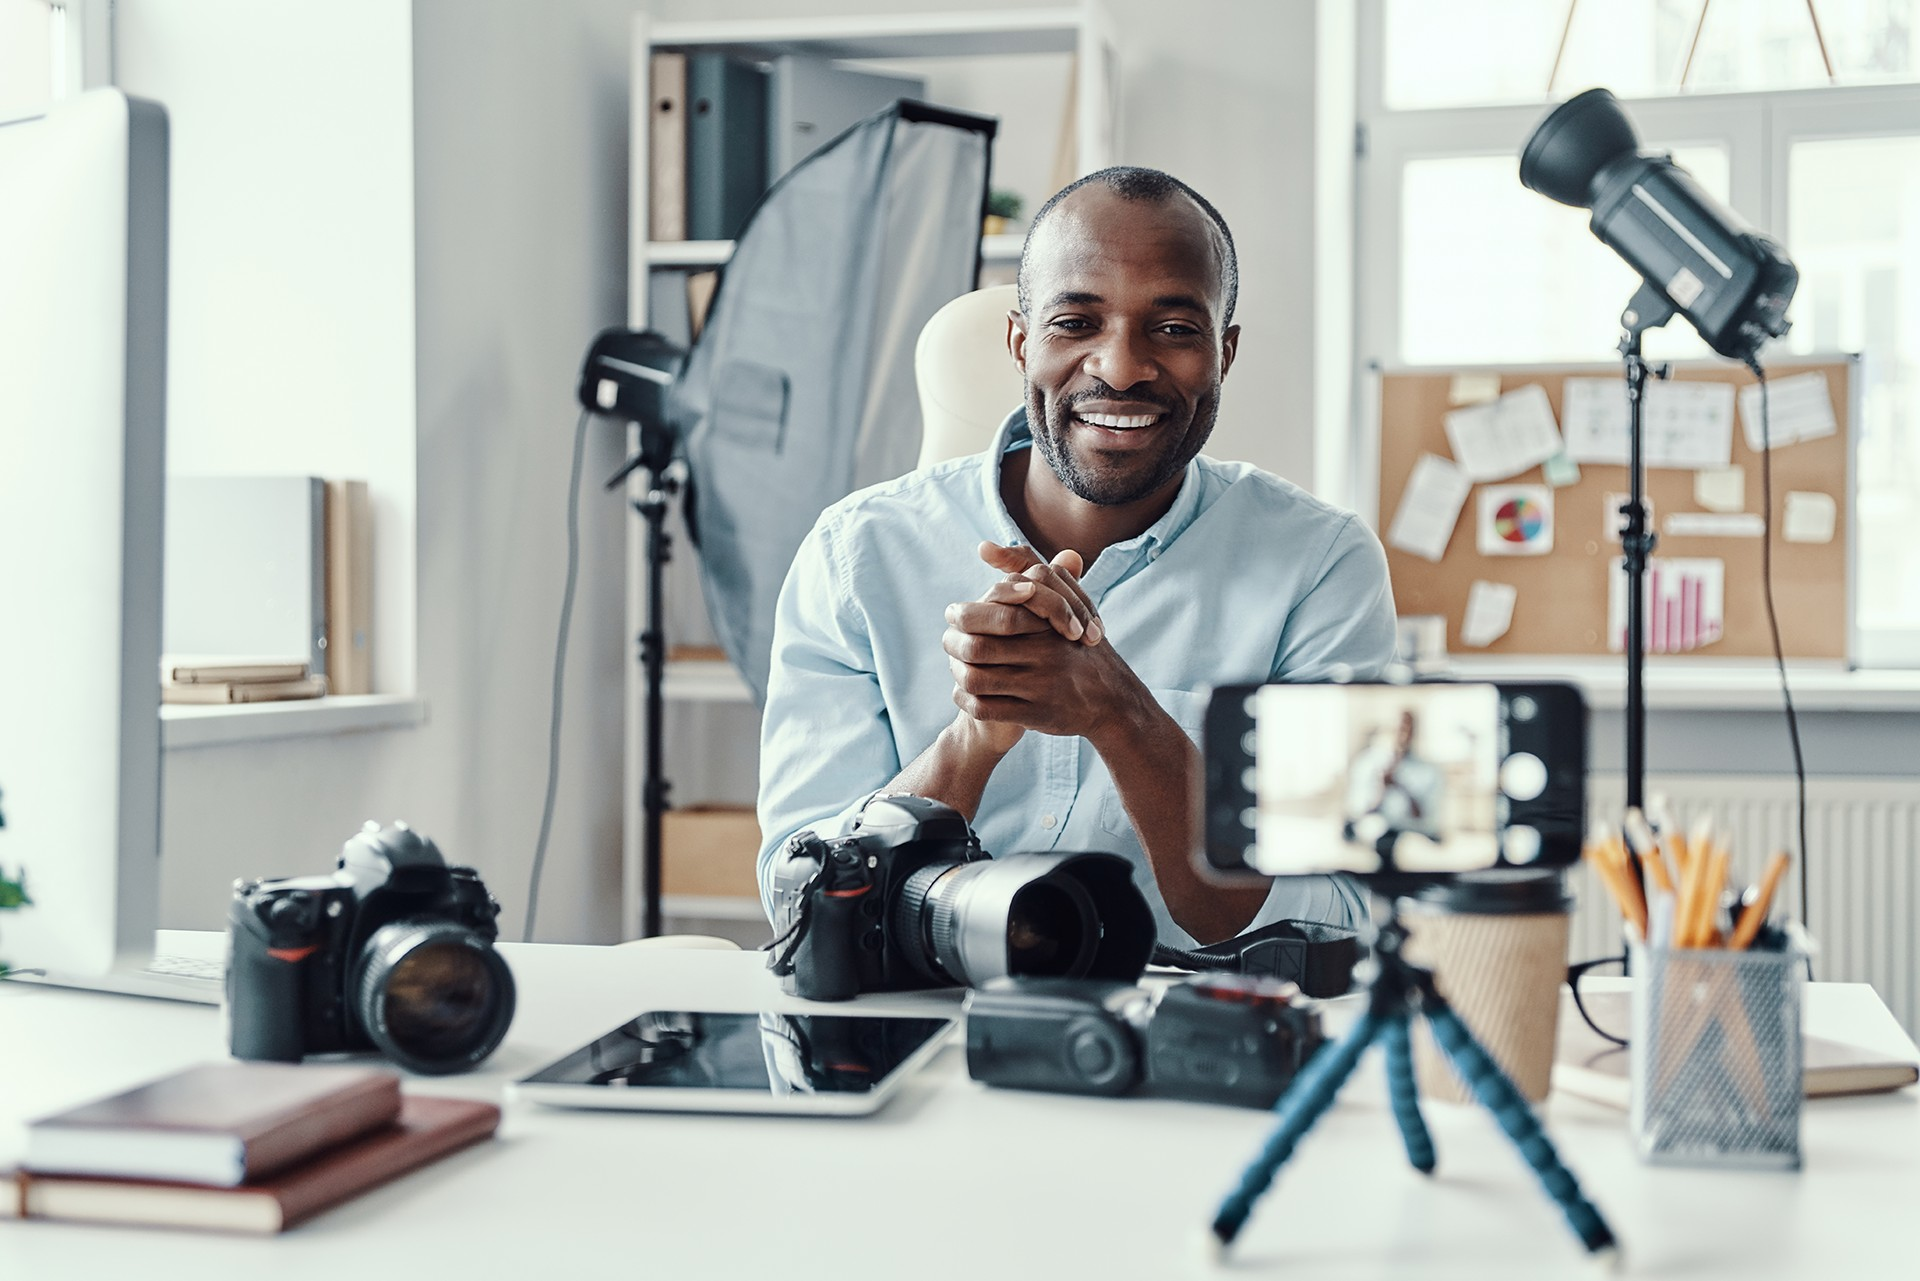 Why Live Streaming Is Important To Grow and Build Your Brand